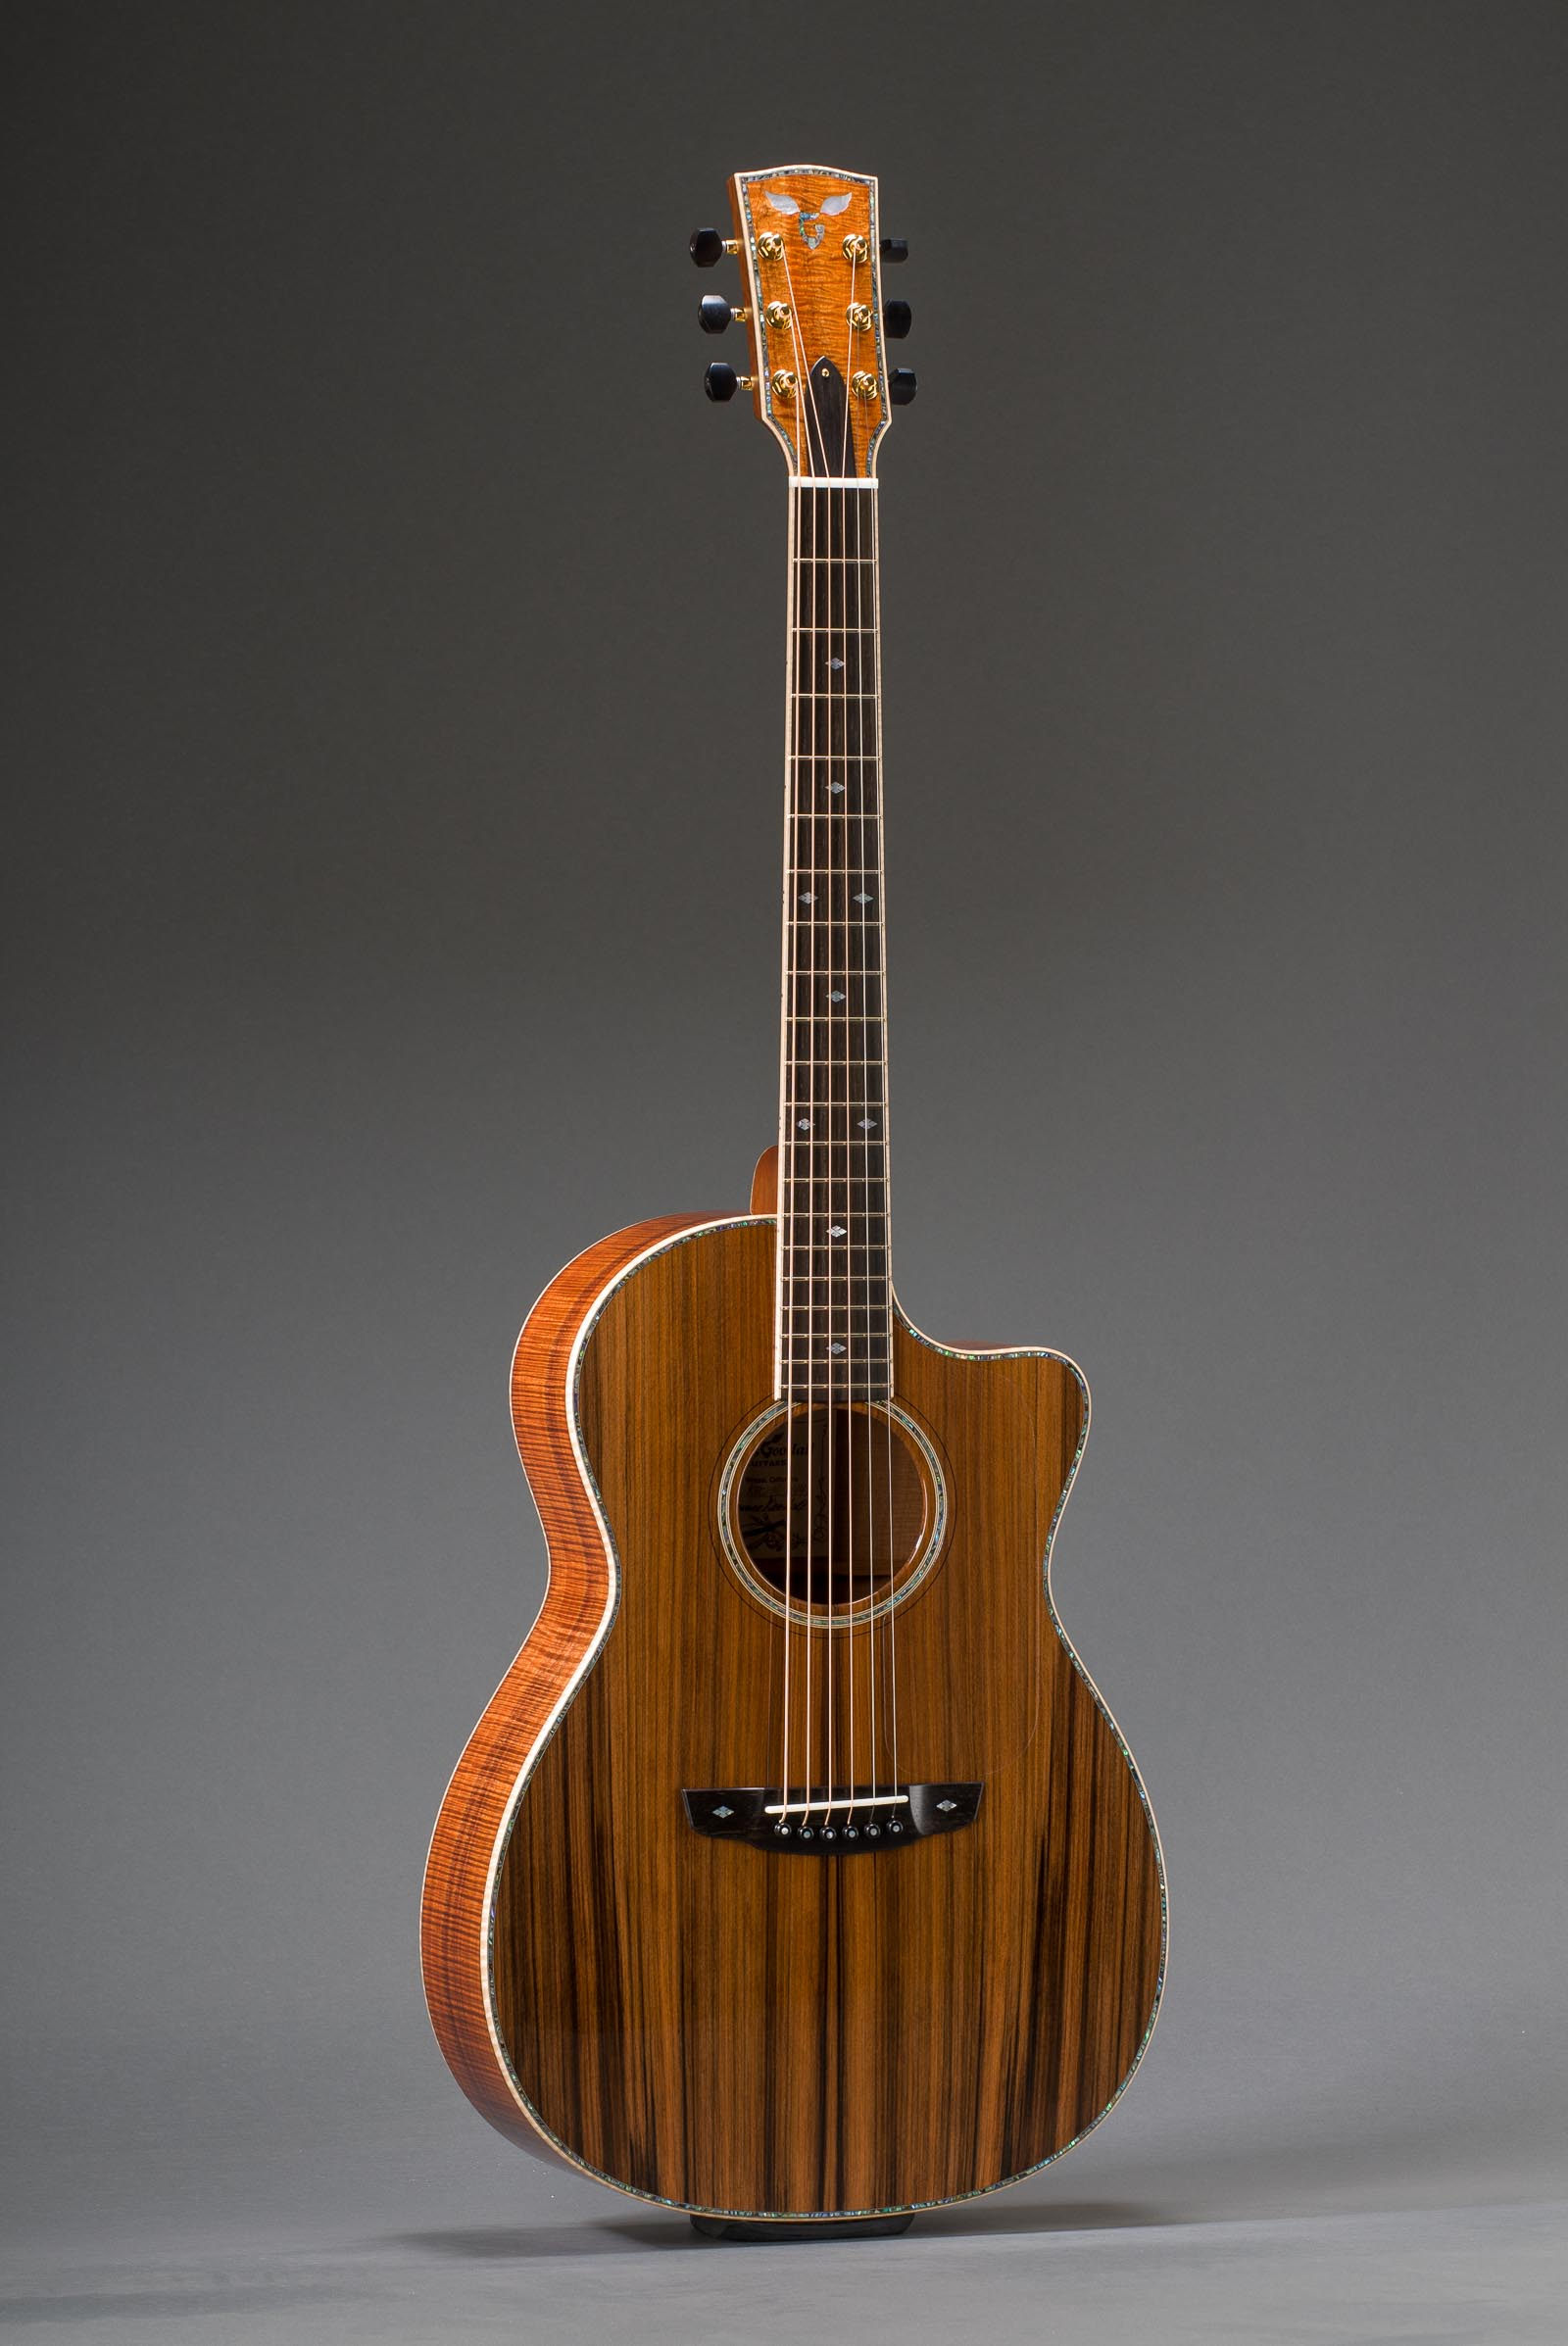 14-Fret Parlor - Figured Hawaiian Koa with Sinker Redwood Top, Fancy Paua Rosette, & Curly Maple Binding - Including Matching Fretboard Option, Fancy Paua Top Inlay Option